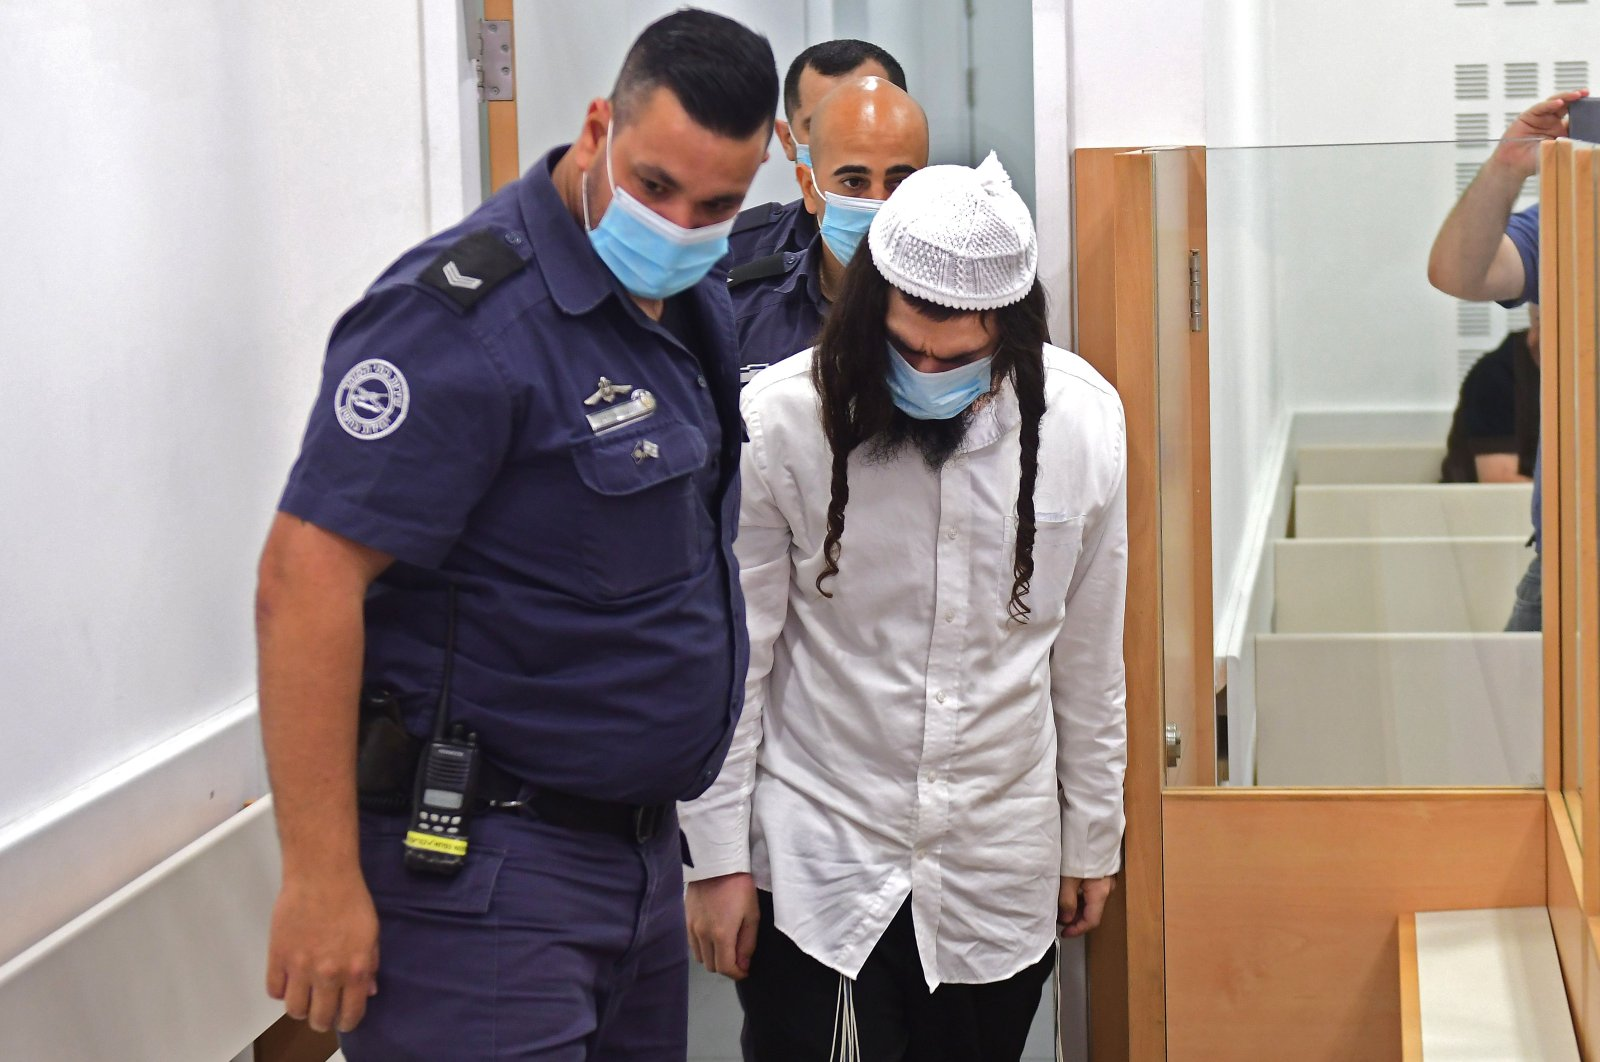 Amiram Ben-Uliel, a Jewish settler, is lead by police into court at the Central Lod District Court, in the central Israeli city on May 18, 2020, for his sentencing hearing over the 2015 arson attack that killed a Palestinian toddler and his parents. (AFP Photo)